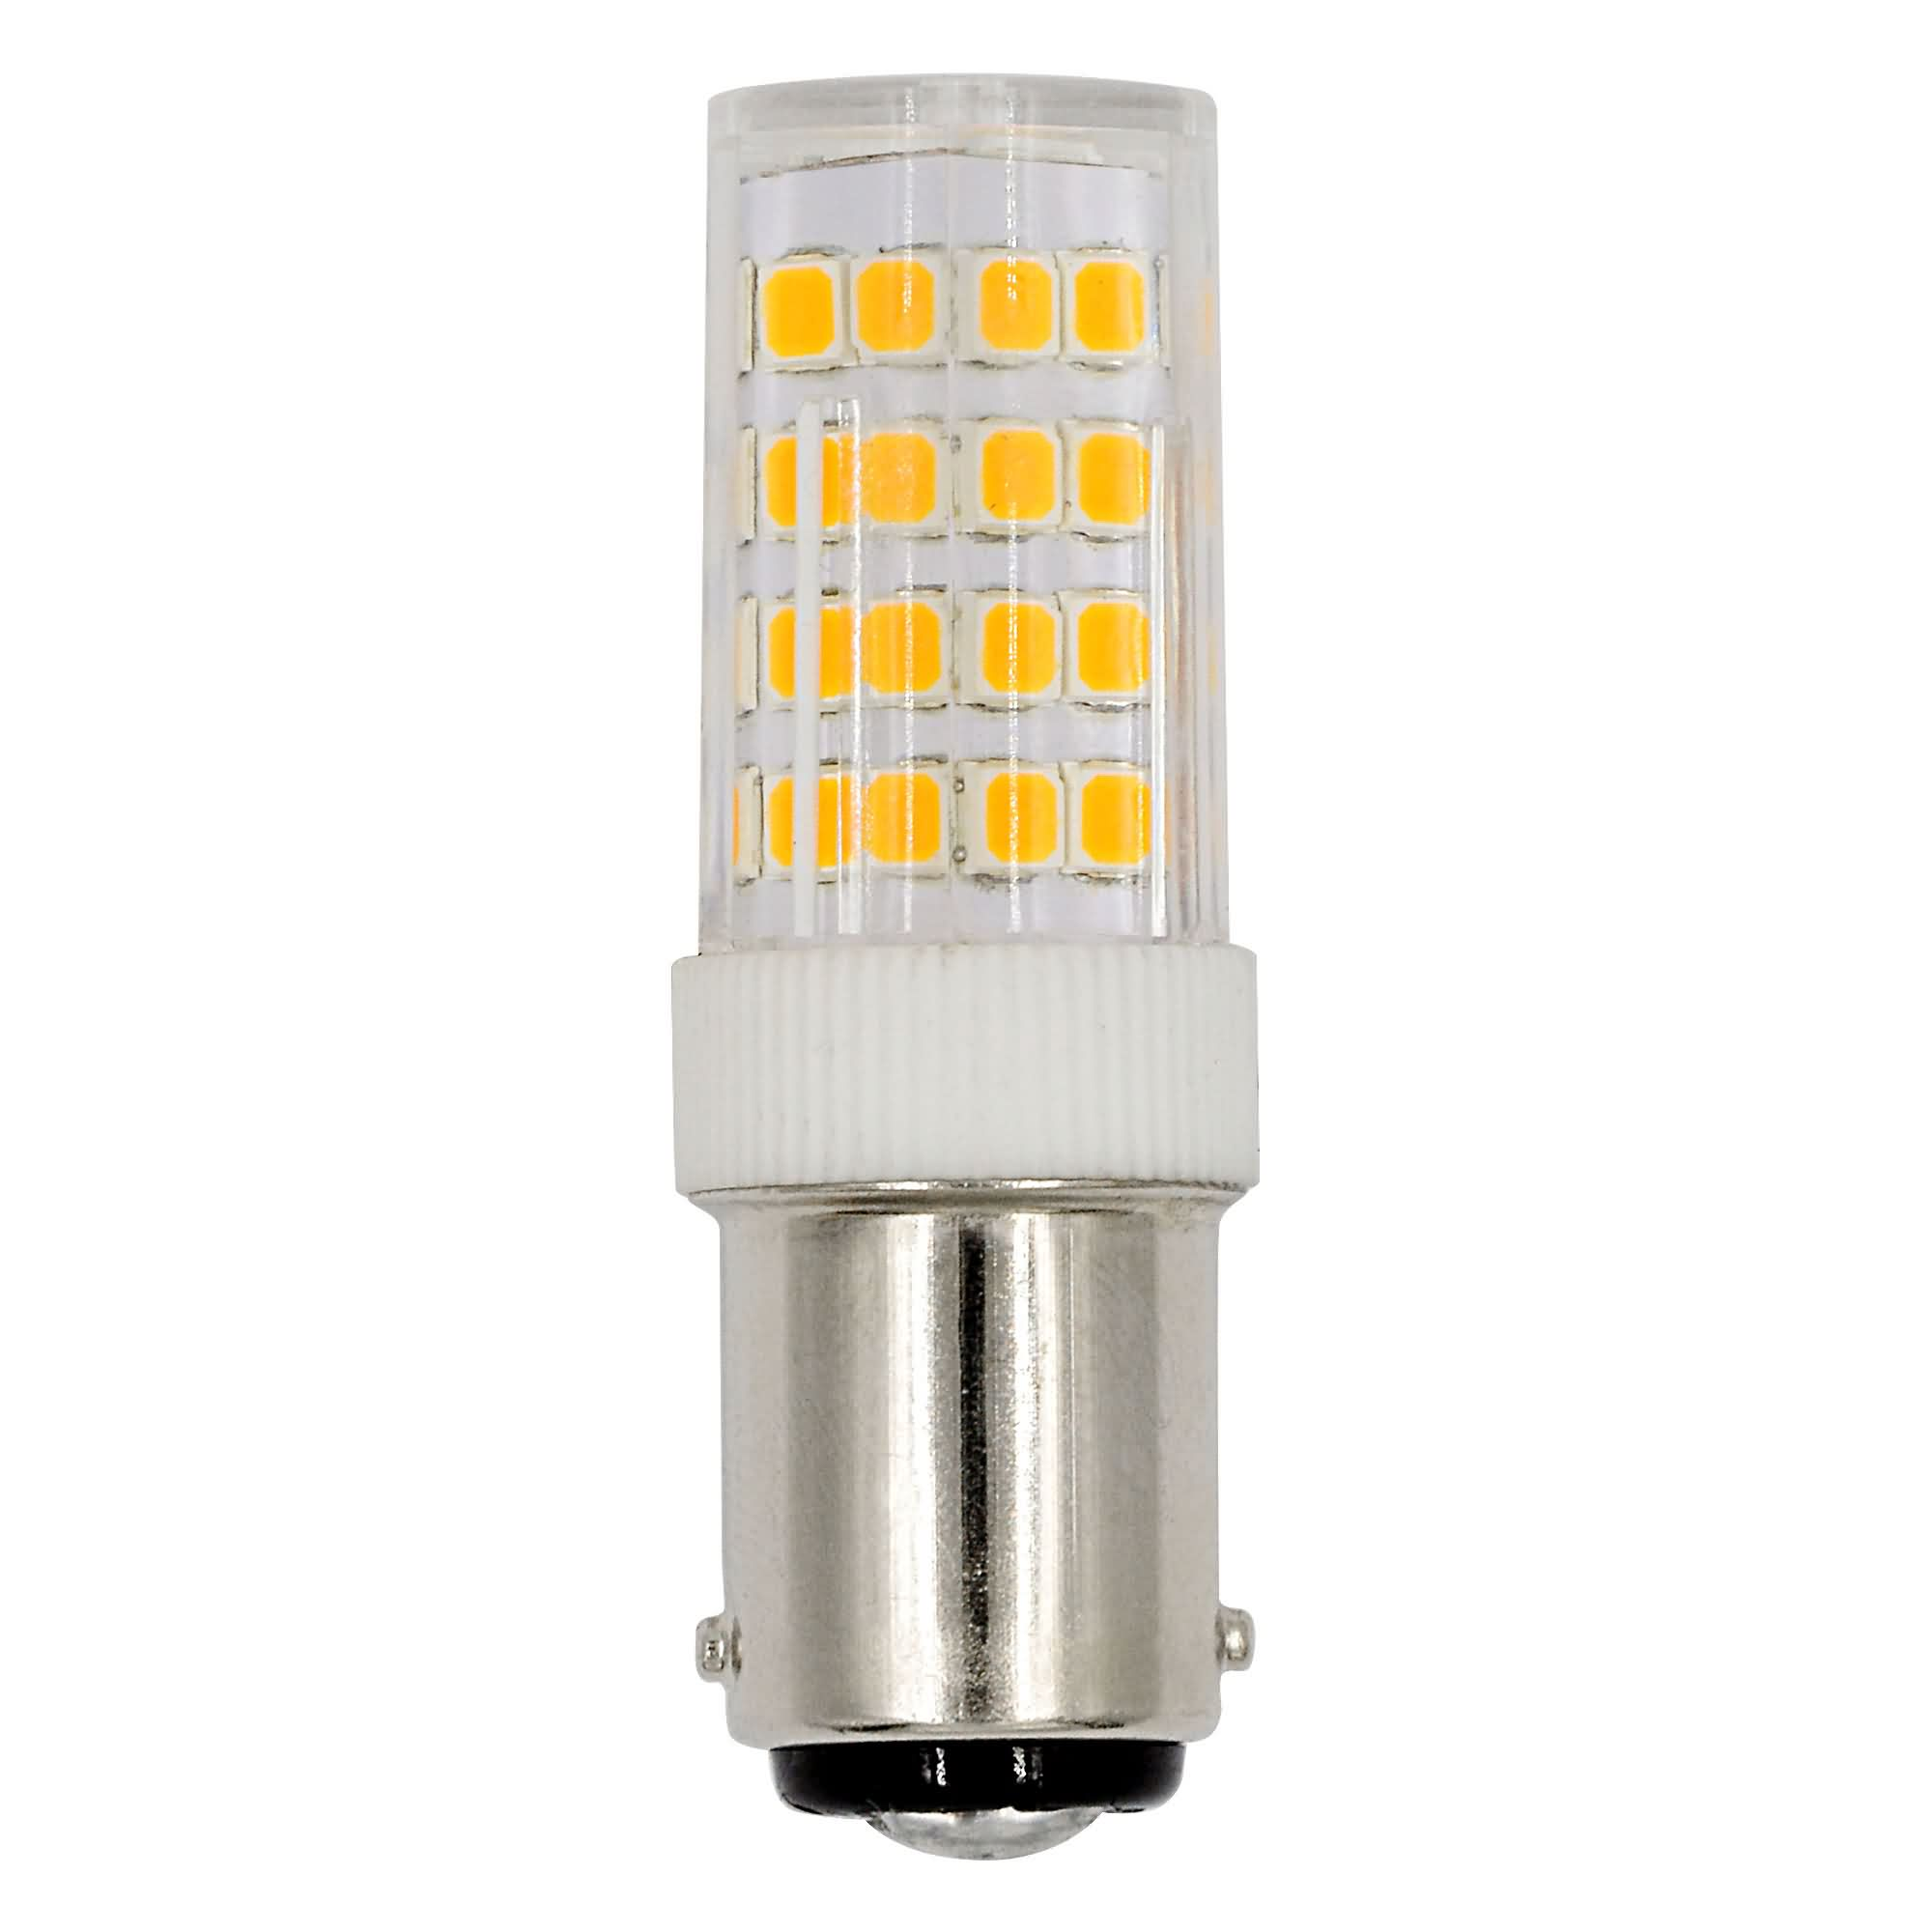 Mengsled Mengs B15d 5w Led Light 52x 2835 Smd Led Bulb Lamp In Warm White Cool White Energy